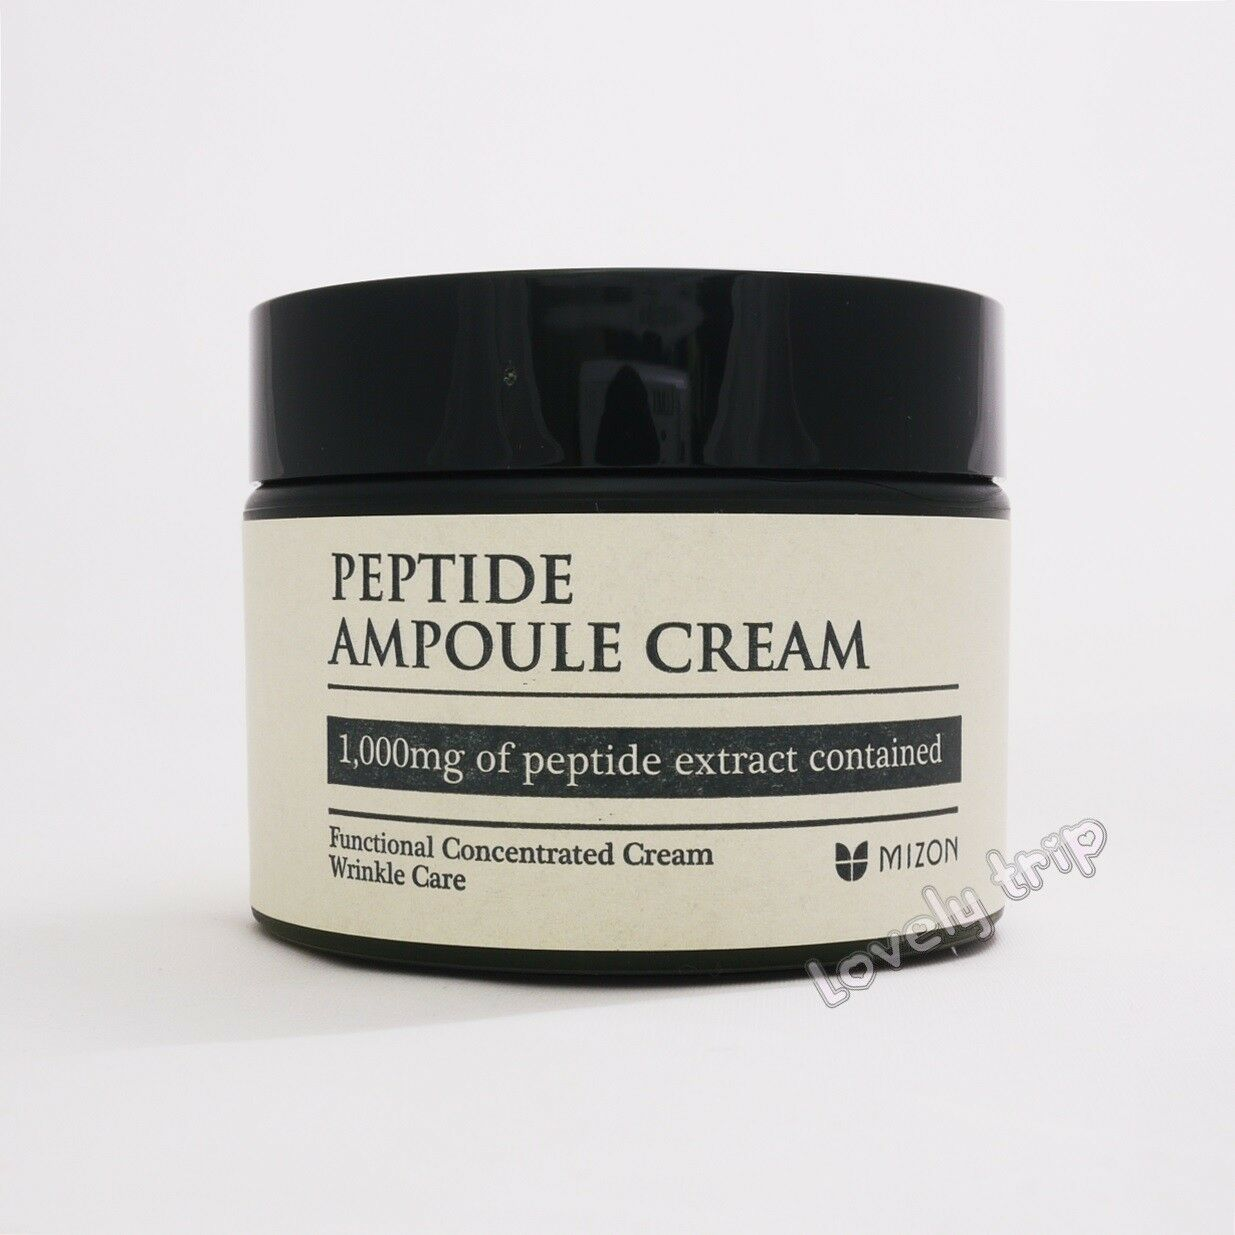 Mizon Peptide Ampoule Cream 50ml 1249 Picclick Blacksnail All In One 75ml 1 Of 4free Shipping